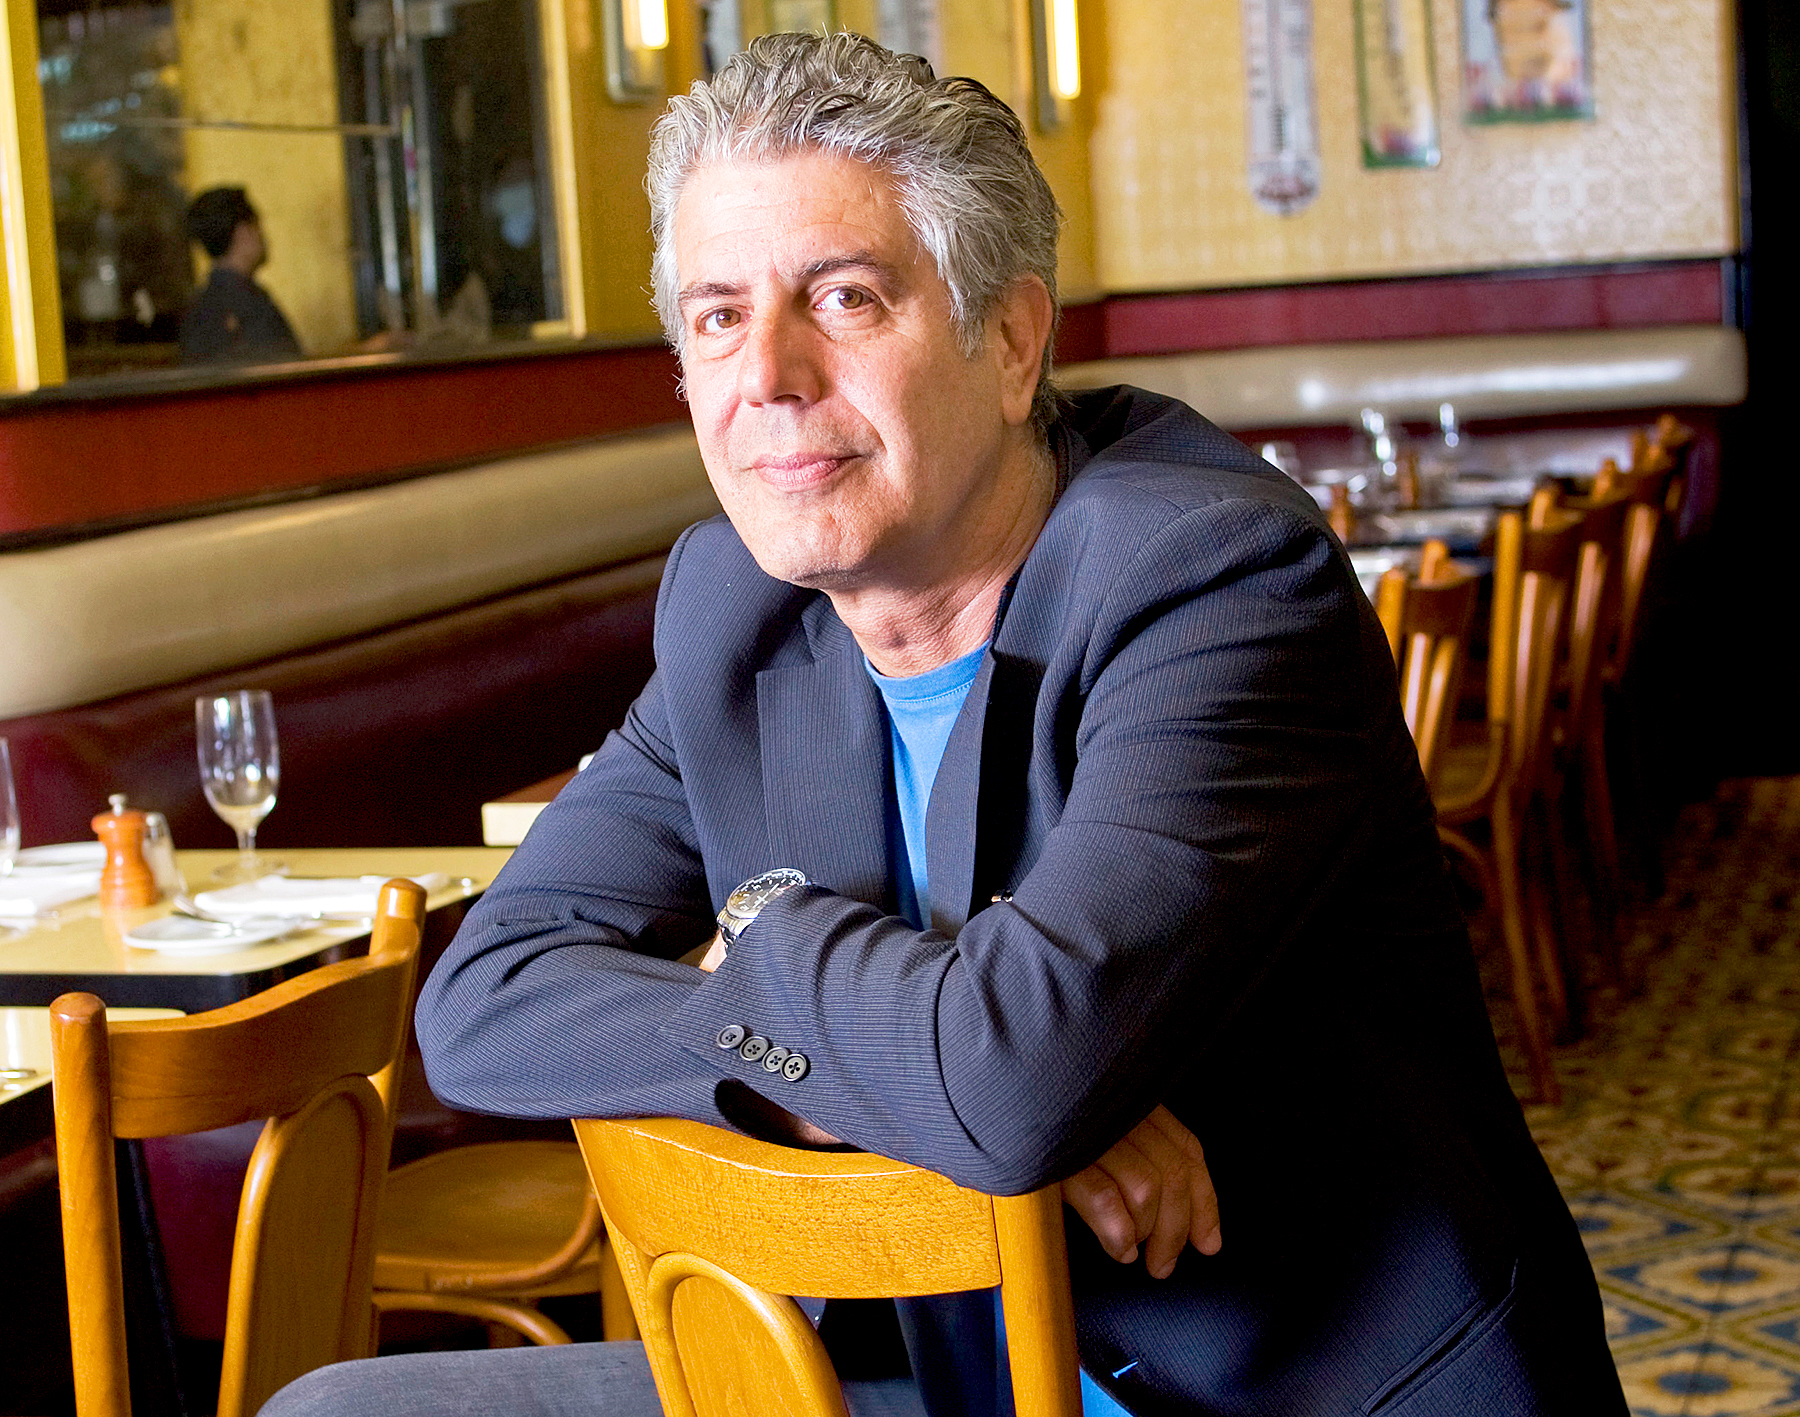 Anthony Bourdain worth $1.21M at the time of his death